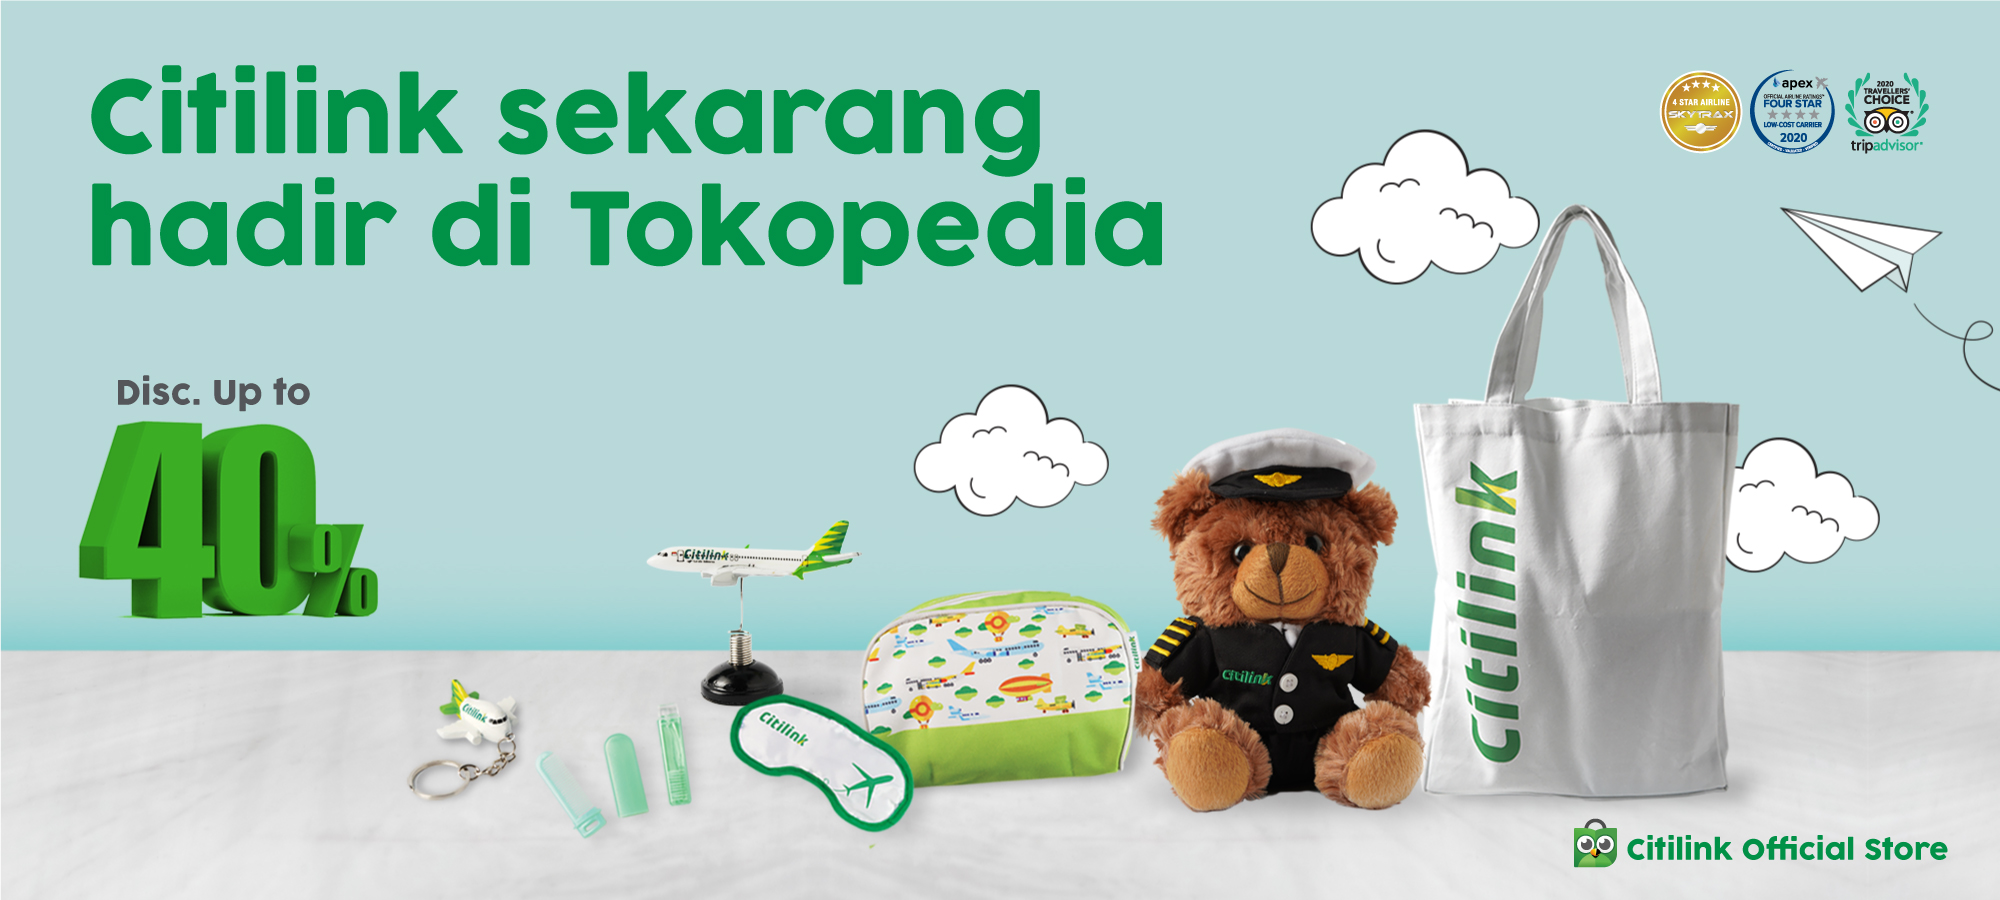 CTL5-Citilink-Tokopedia-Landing-Page